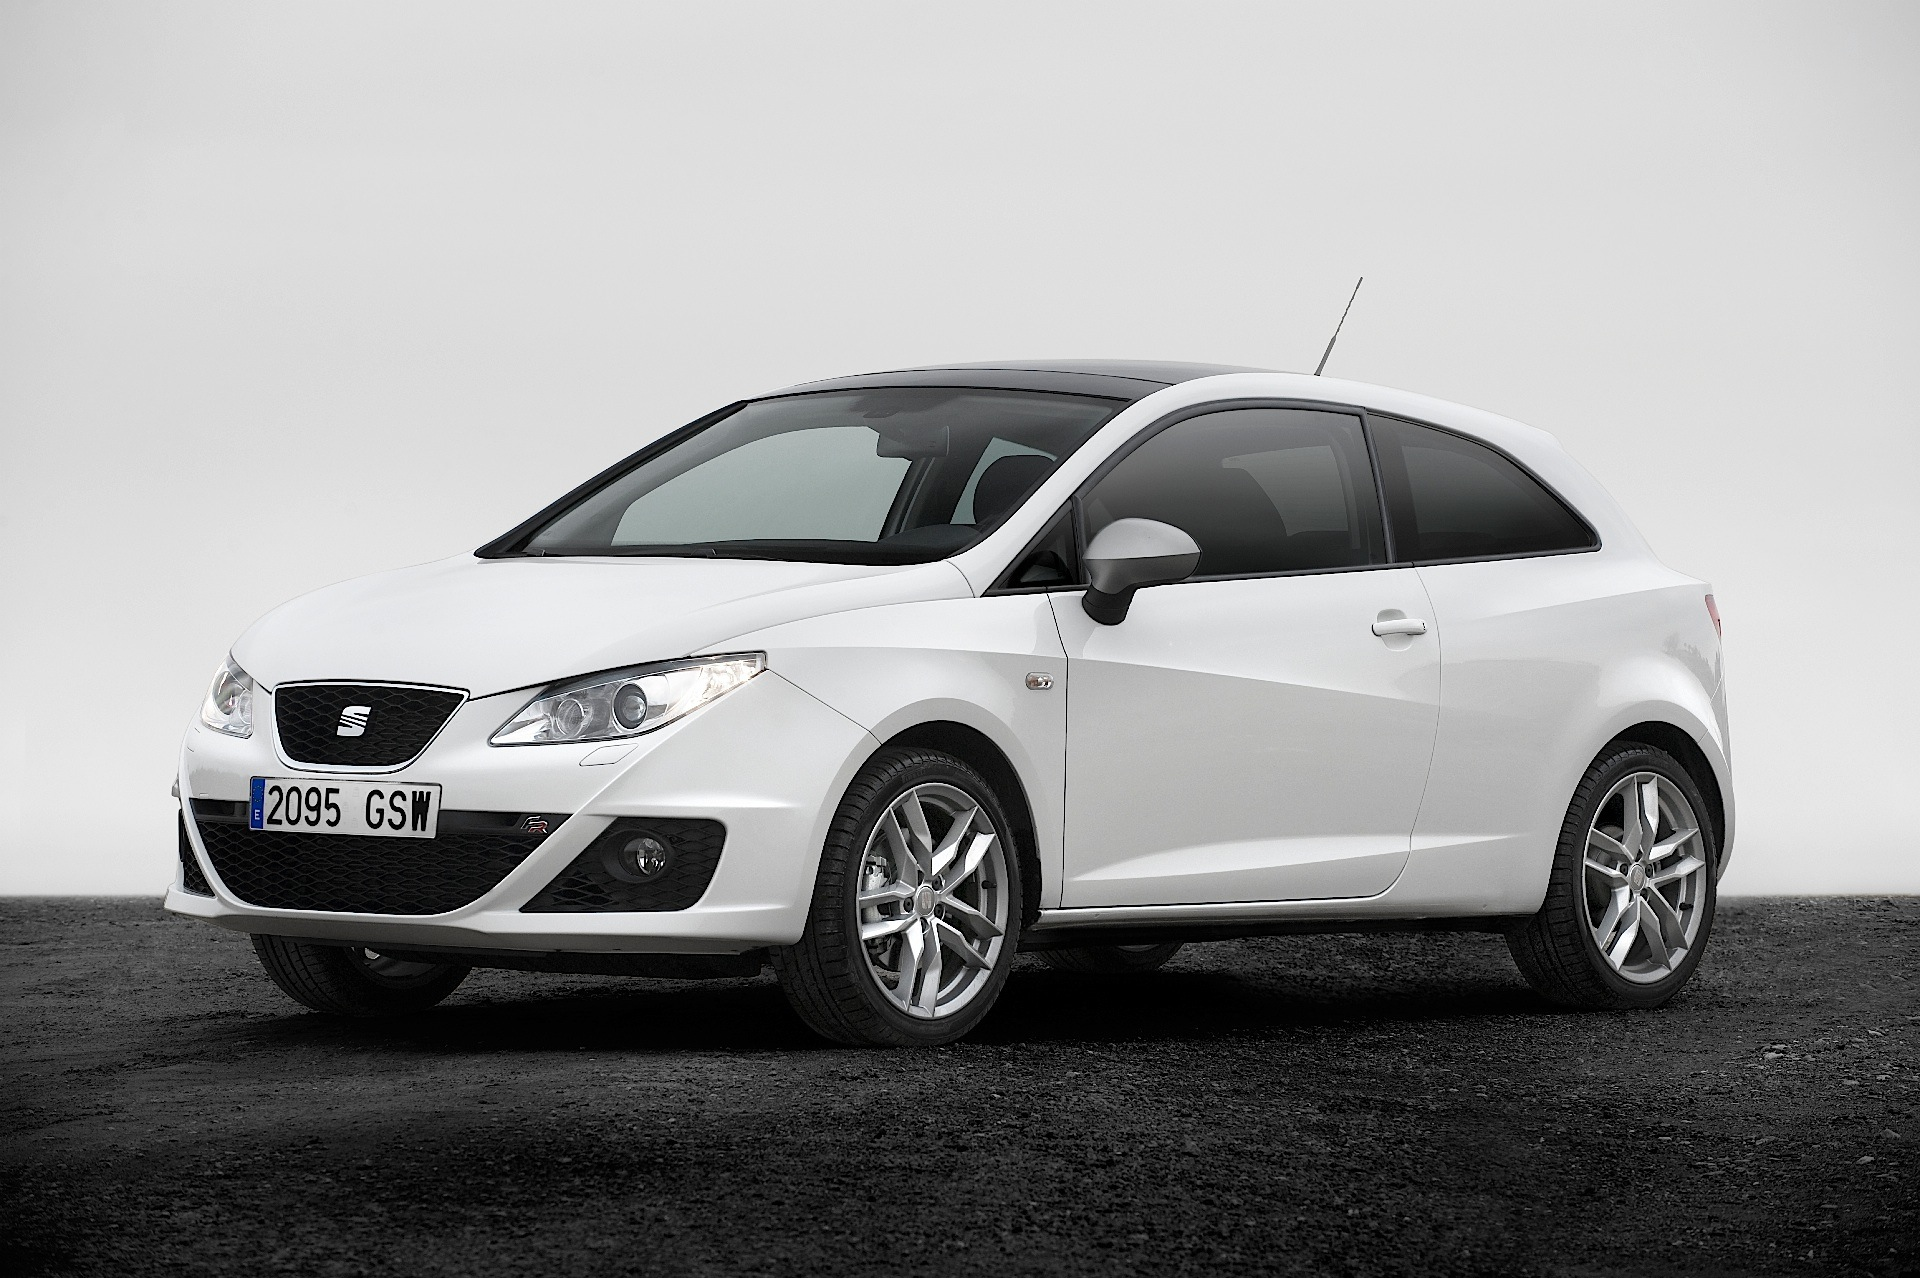 seat ibiza fr sport coupe sc specs 2009 2010 2011 2012 2013 2014 2015 2016 2017. Black Bedroom Furniture Sets. Home Design Ideas